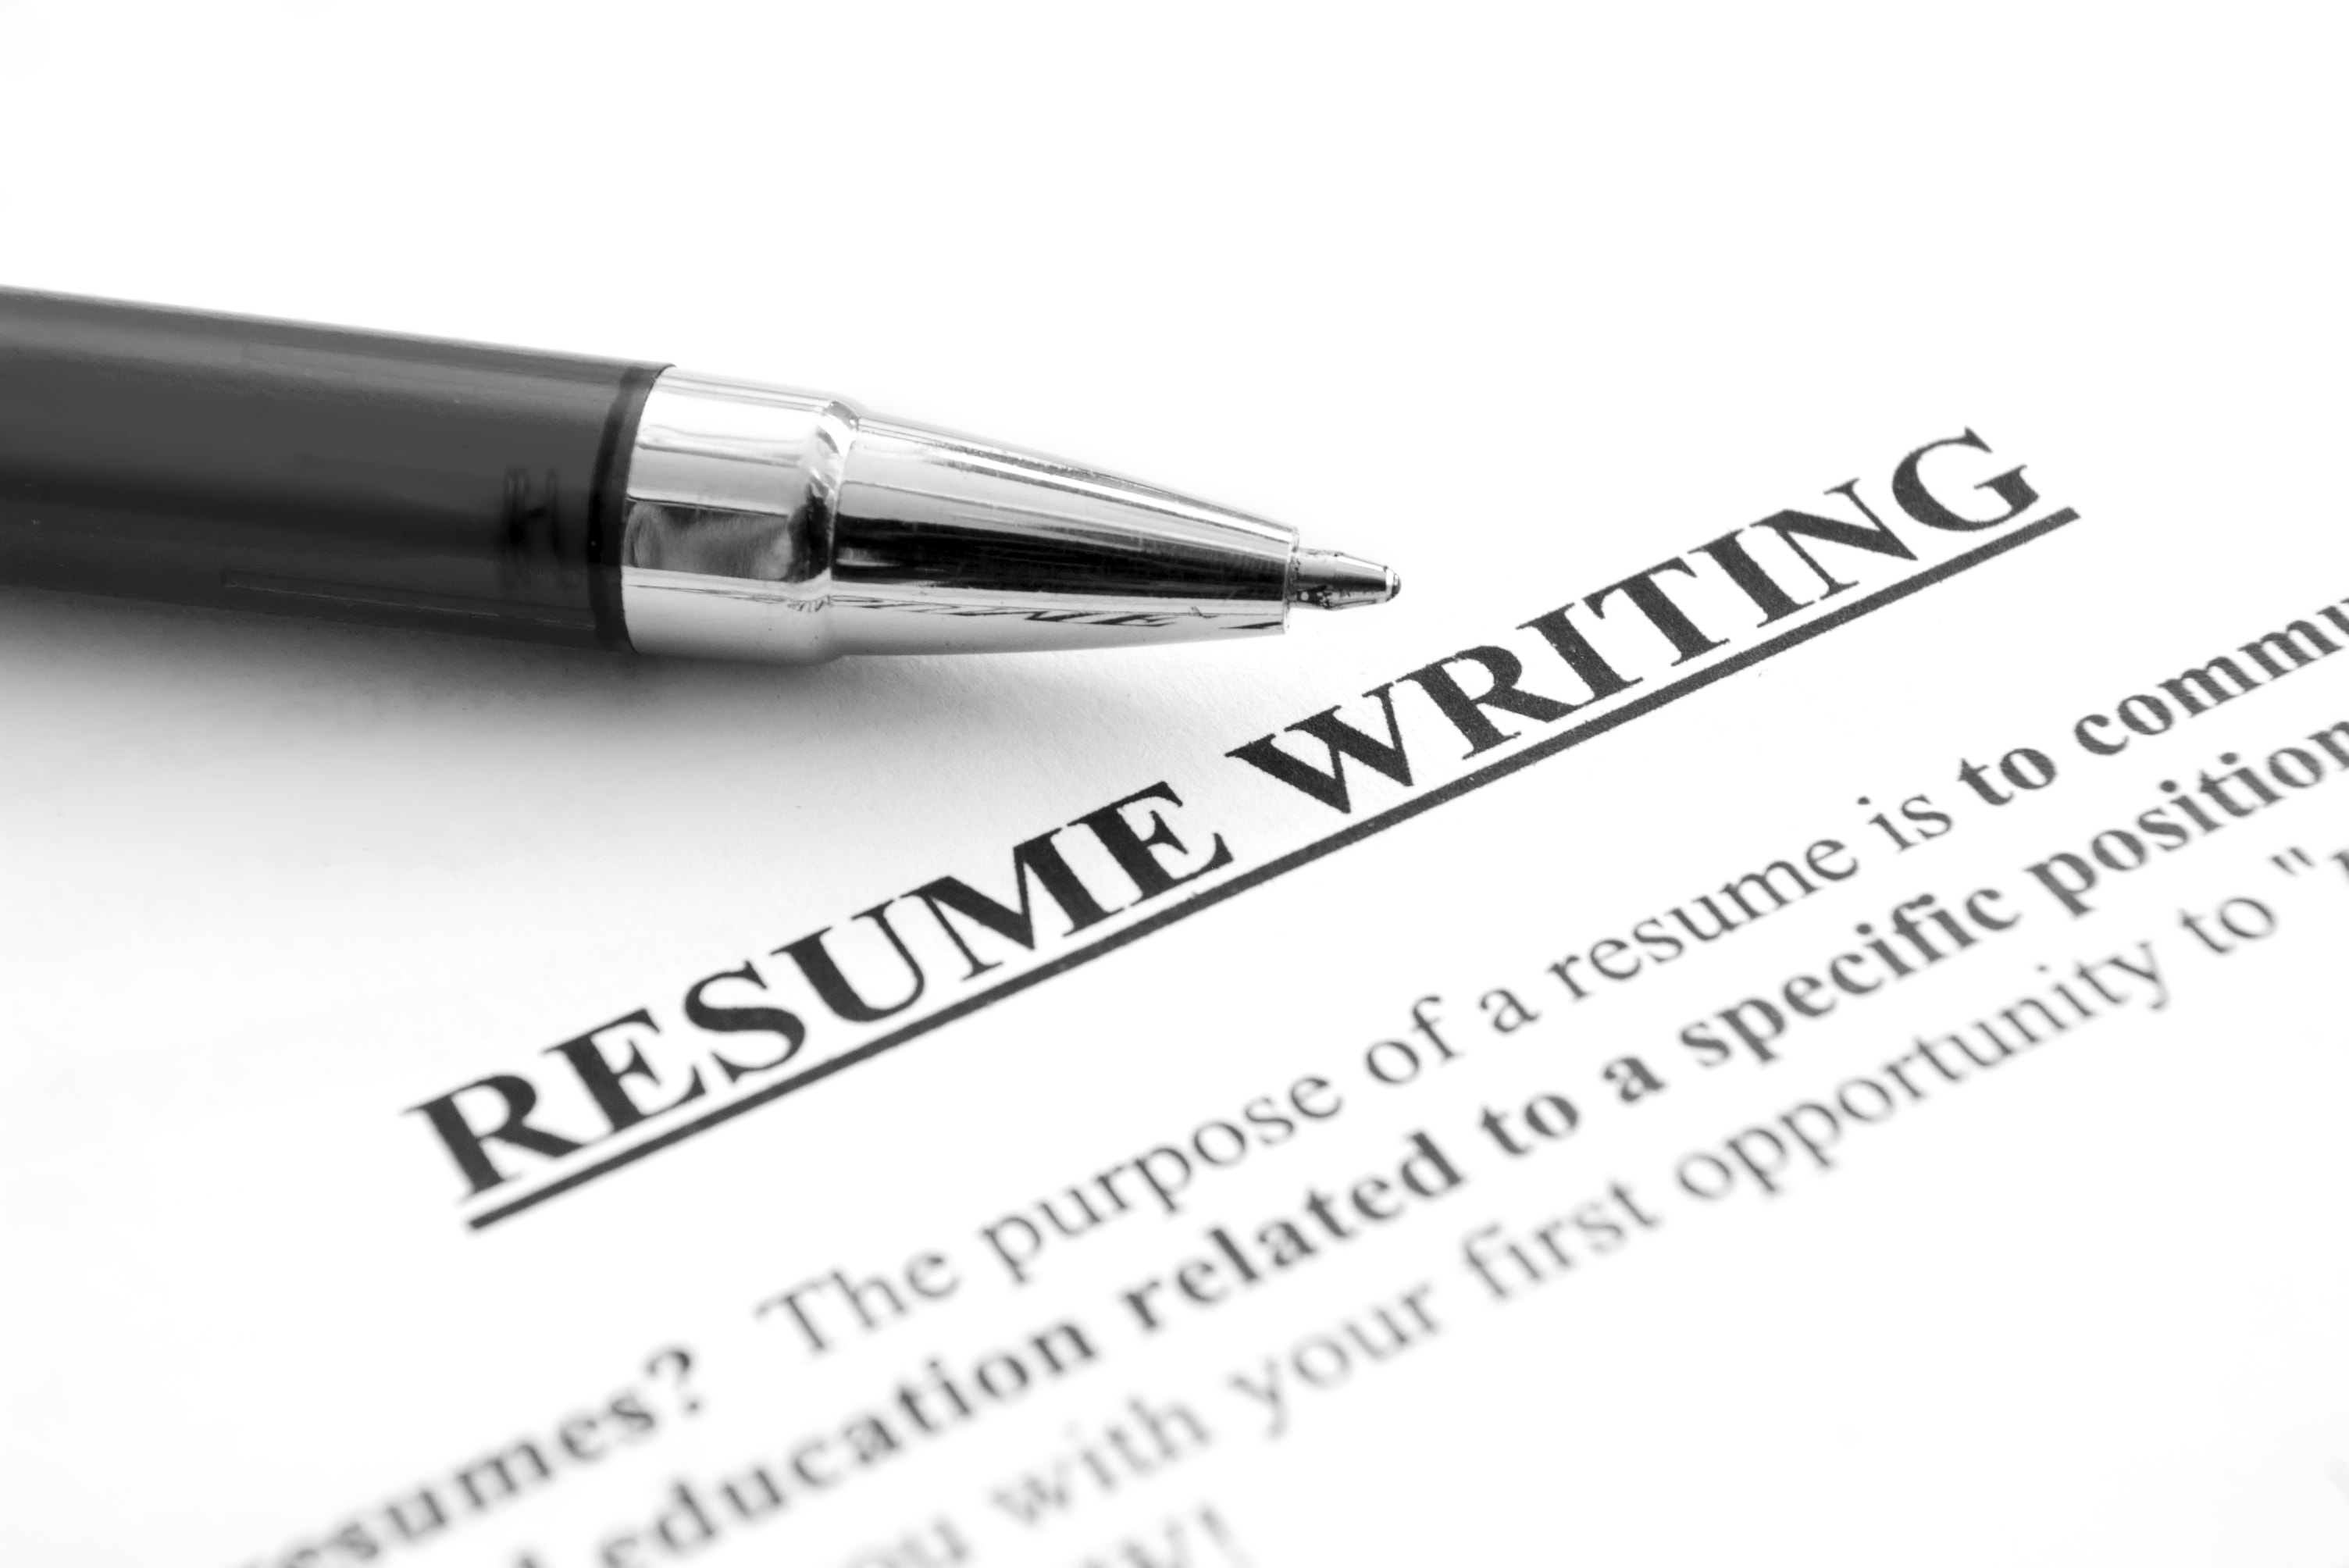 I Will Use My Expertise To Writeedit Modify Cover Letters And Resume